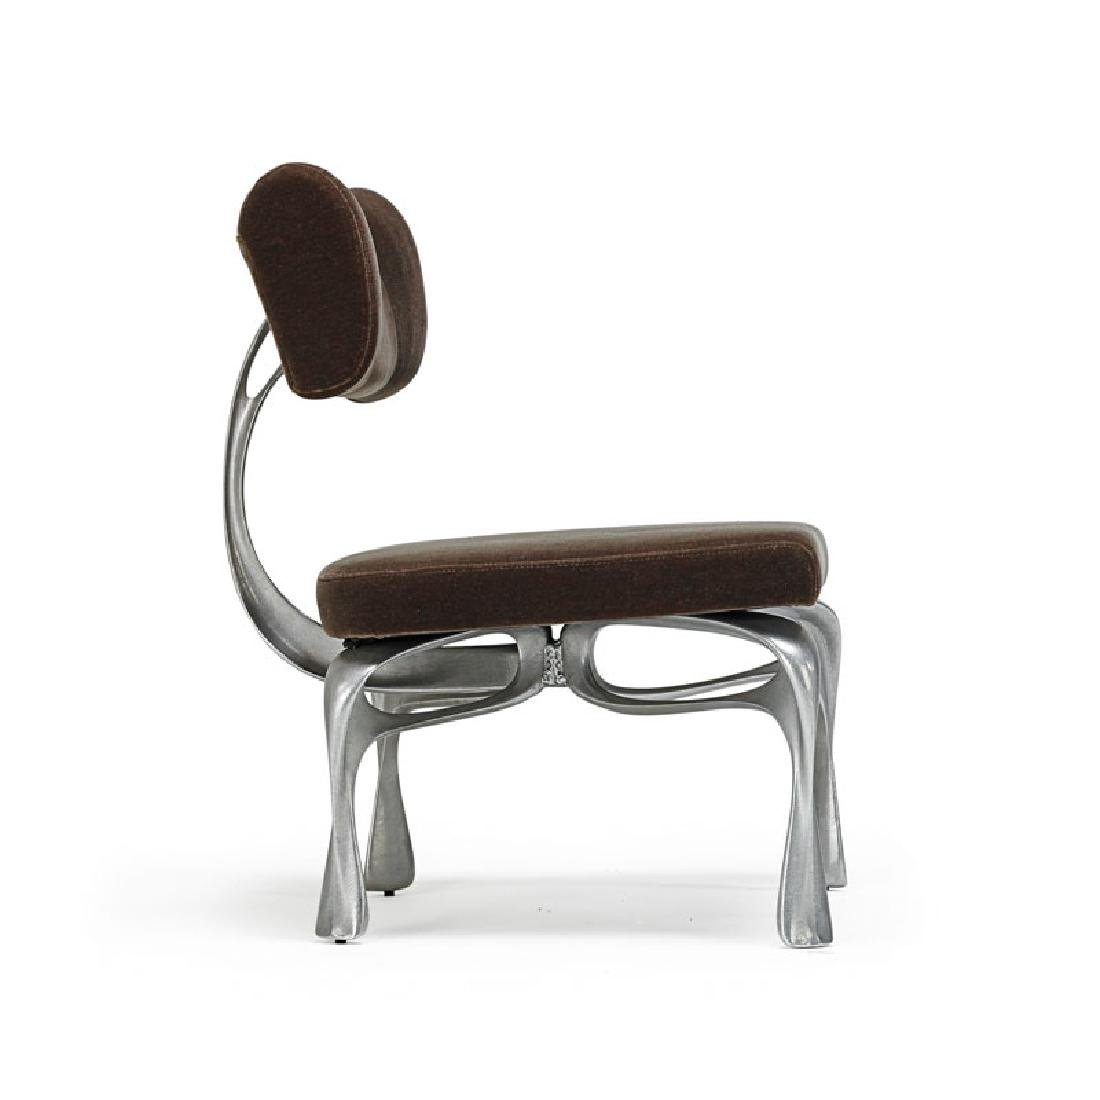 JORDAN MOZER Victory lounge chair (Prototype) - 4